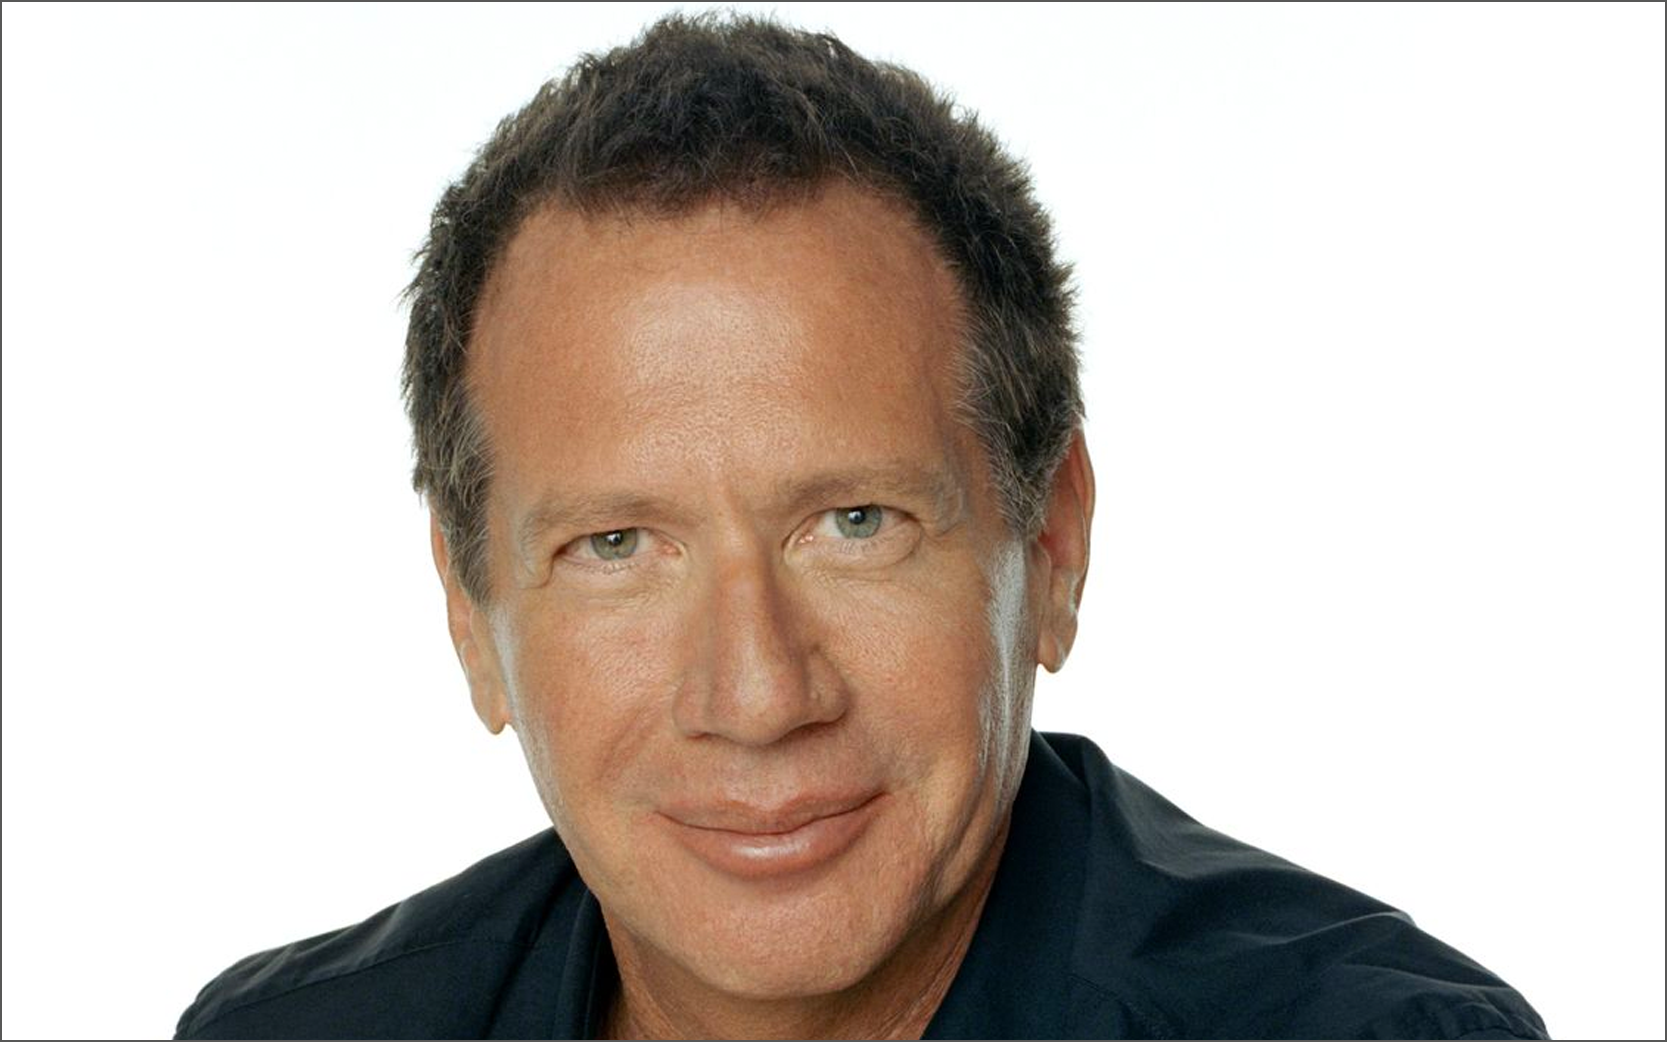 http://newsroom.ucla.edu/releases/garry-shandling-15-million-bequest-medical-research